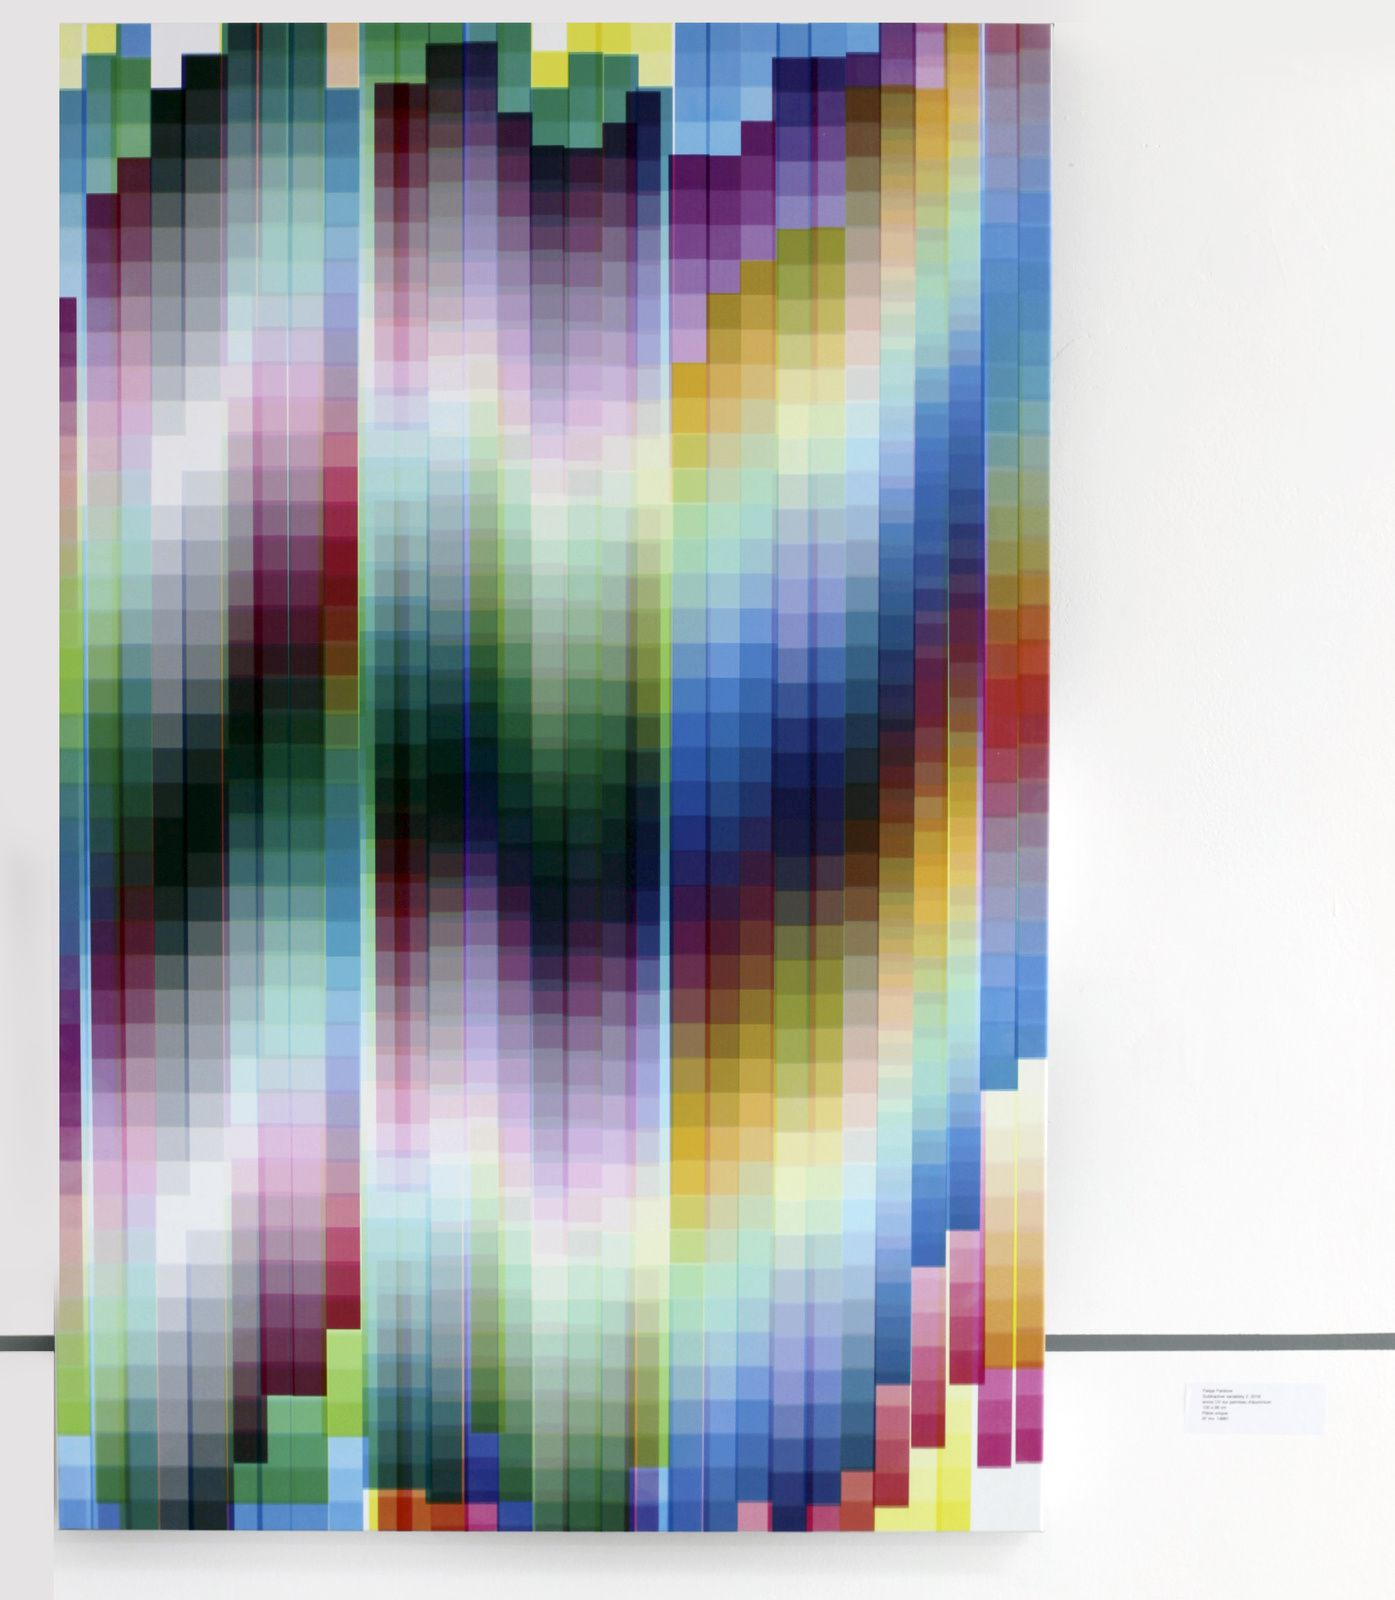 """Subtractive variability 2"", 2018 de Felipe PANTONE - Courtesy Galerie Magda Danysz - Paris © Photo Éric Simon"